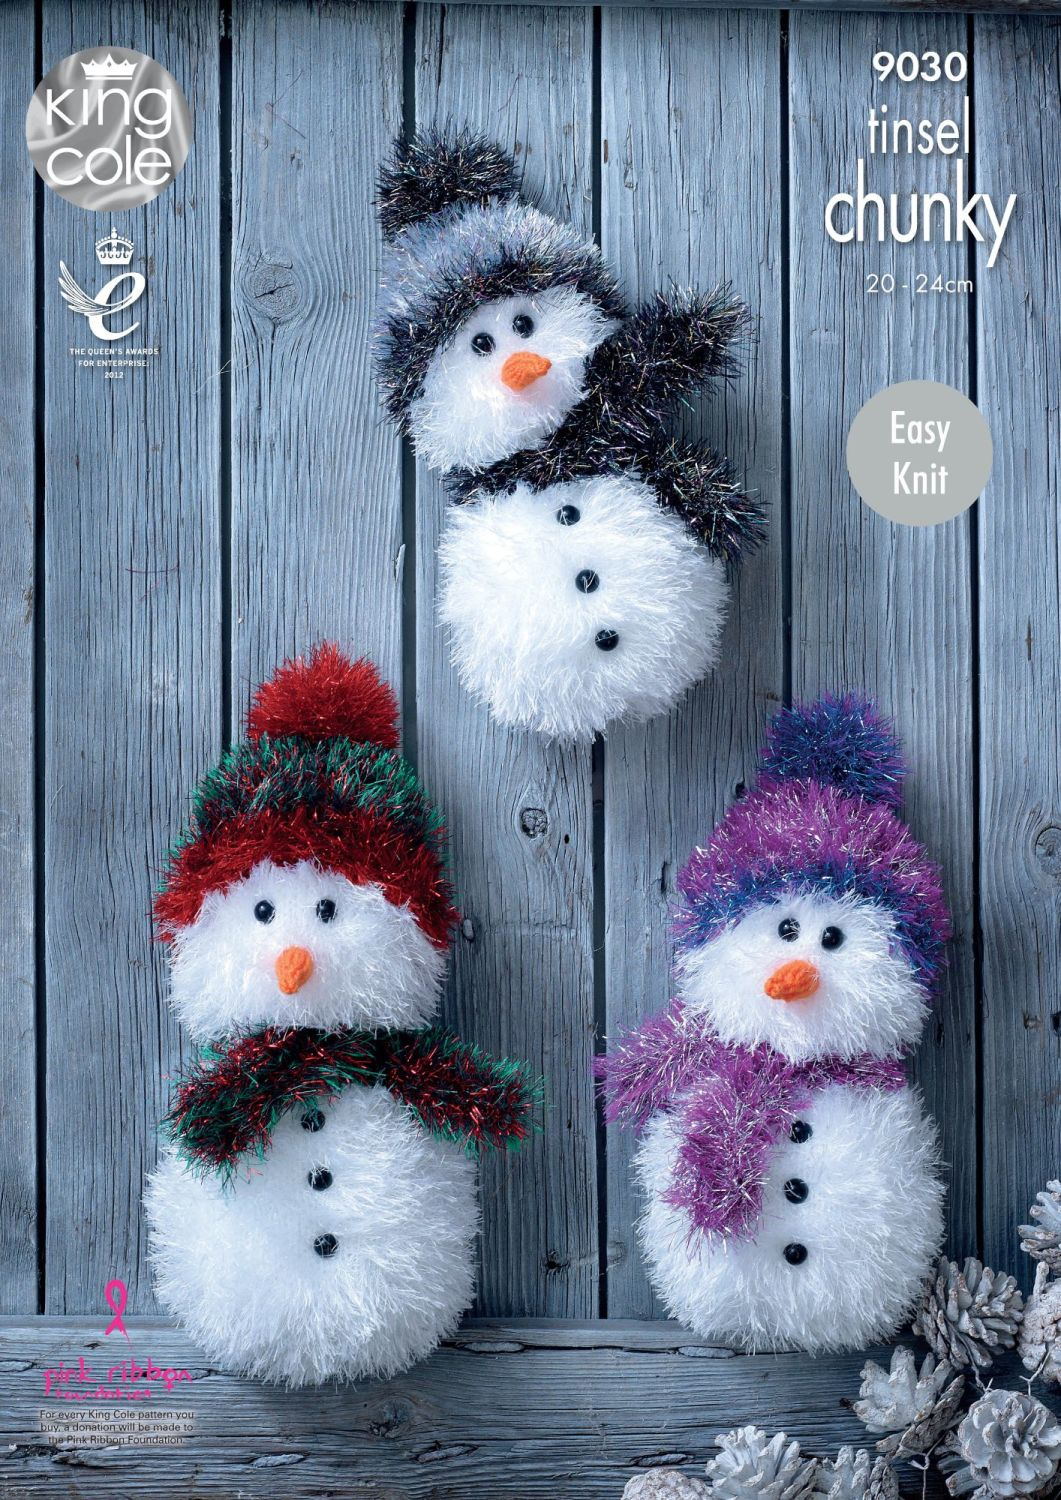 9030 Knitting Pattern - Tinsel Chunky Snowman (Easy Knit)